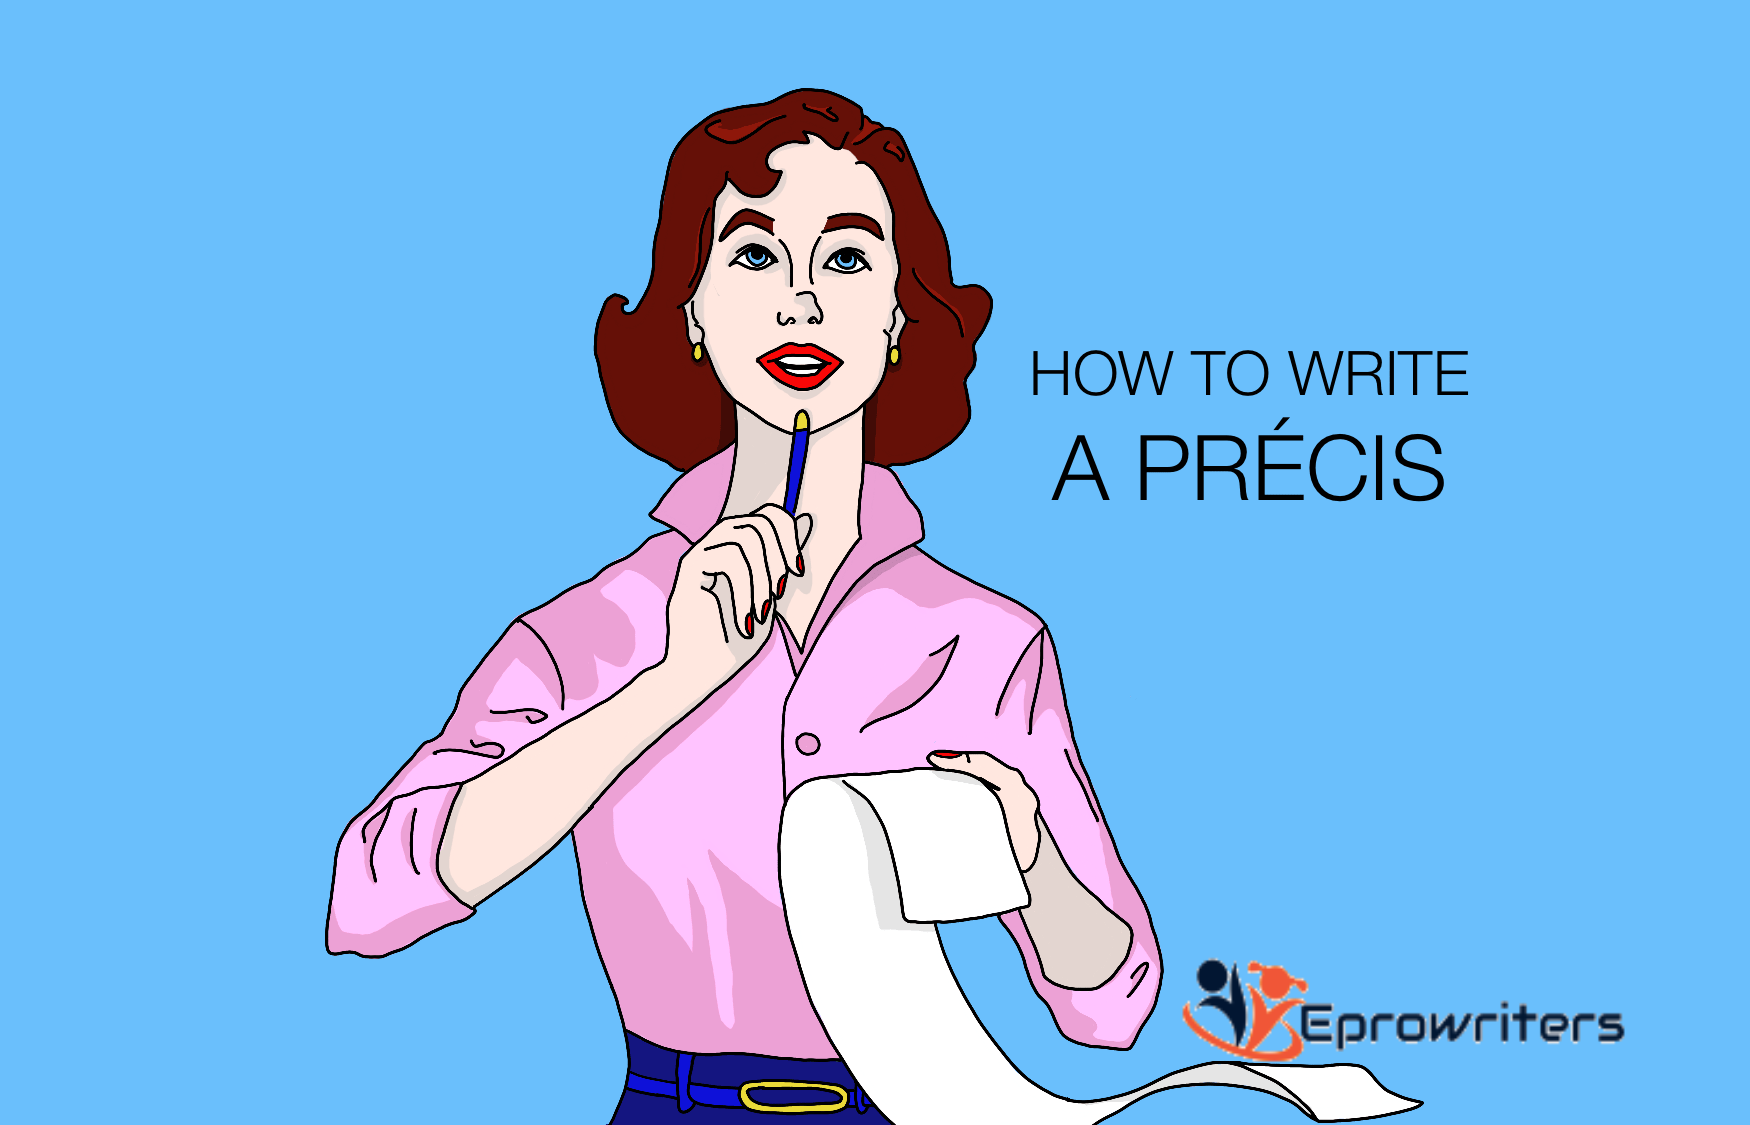 Step-by-Step Instructions for Writing a Précis